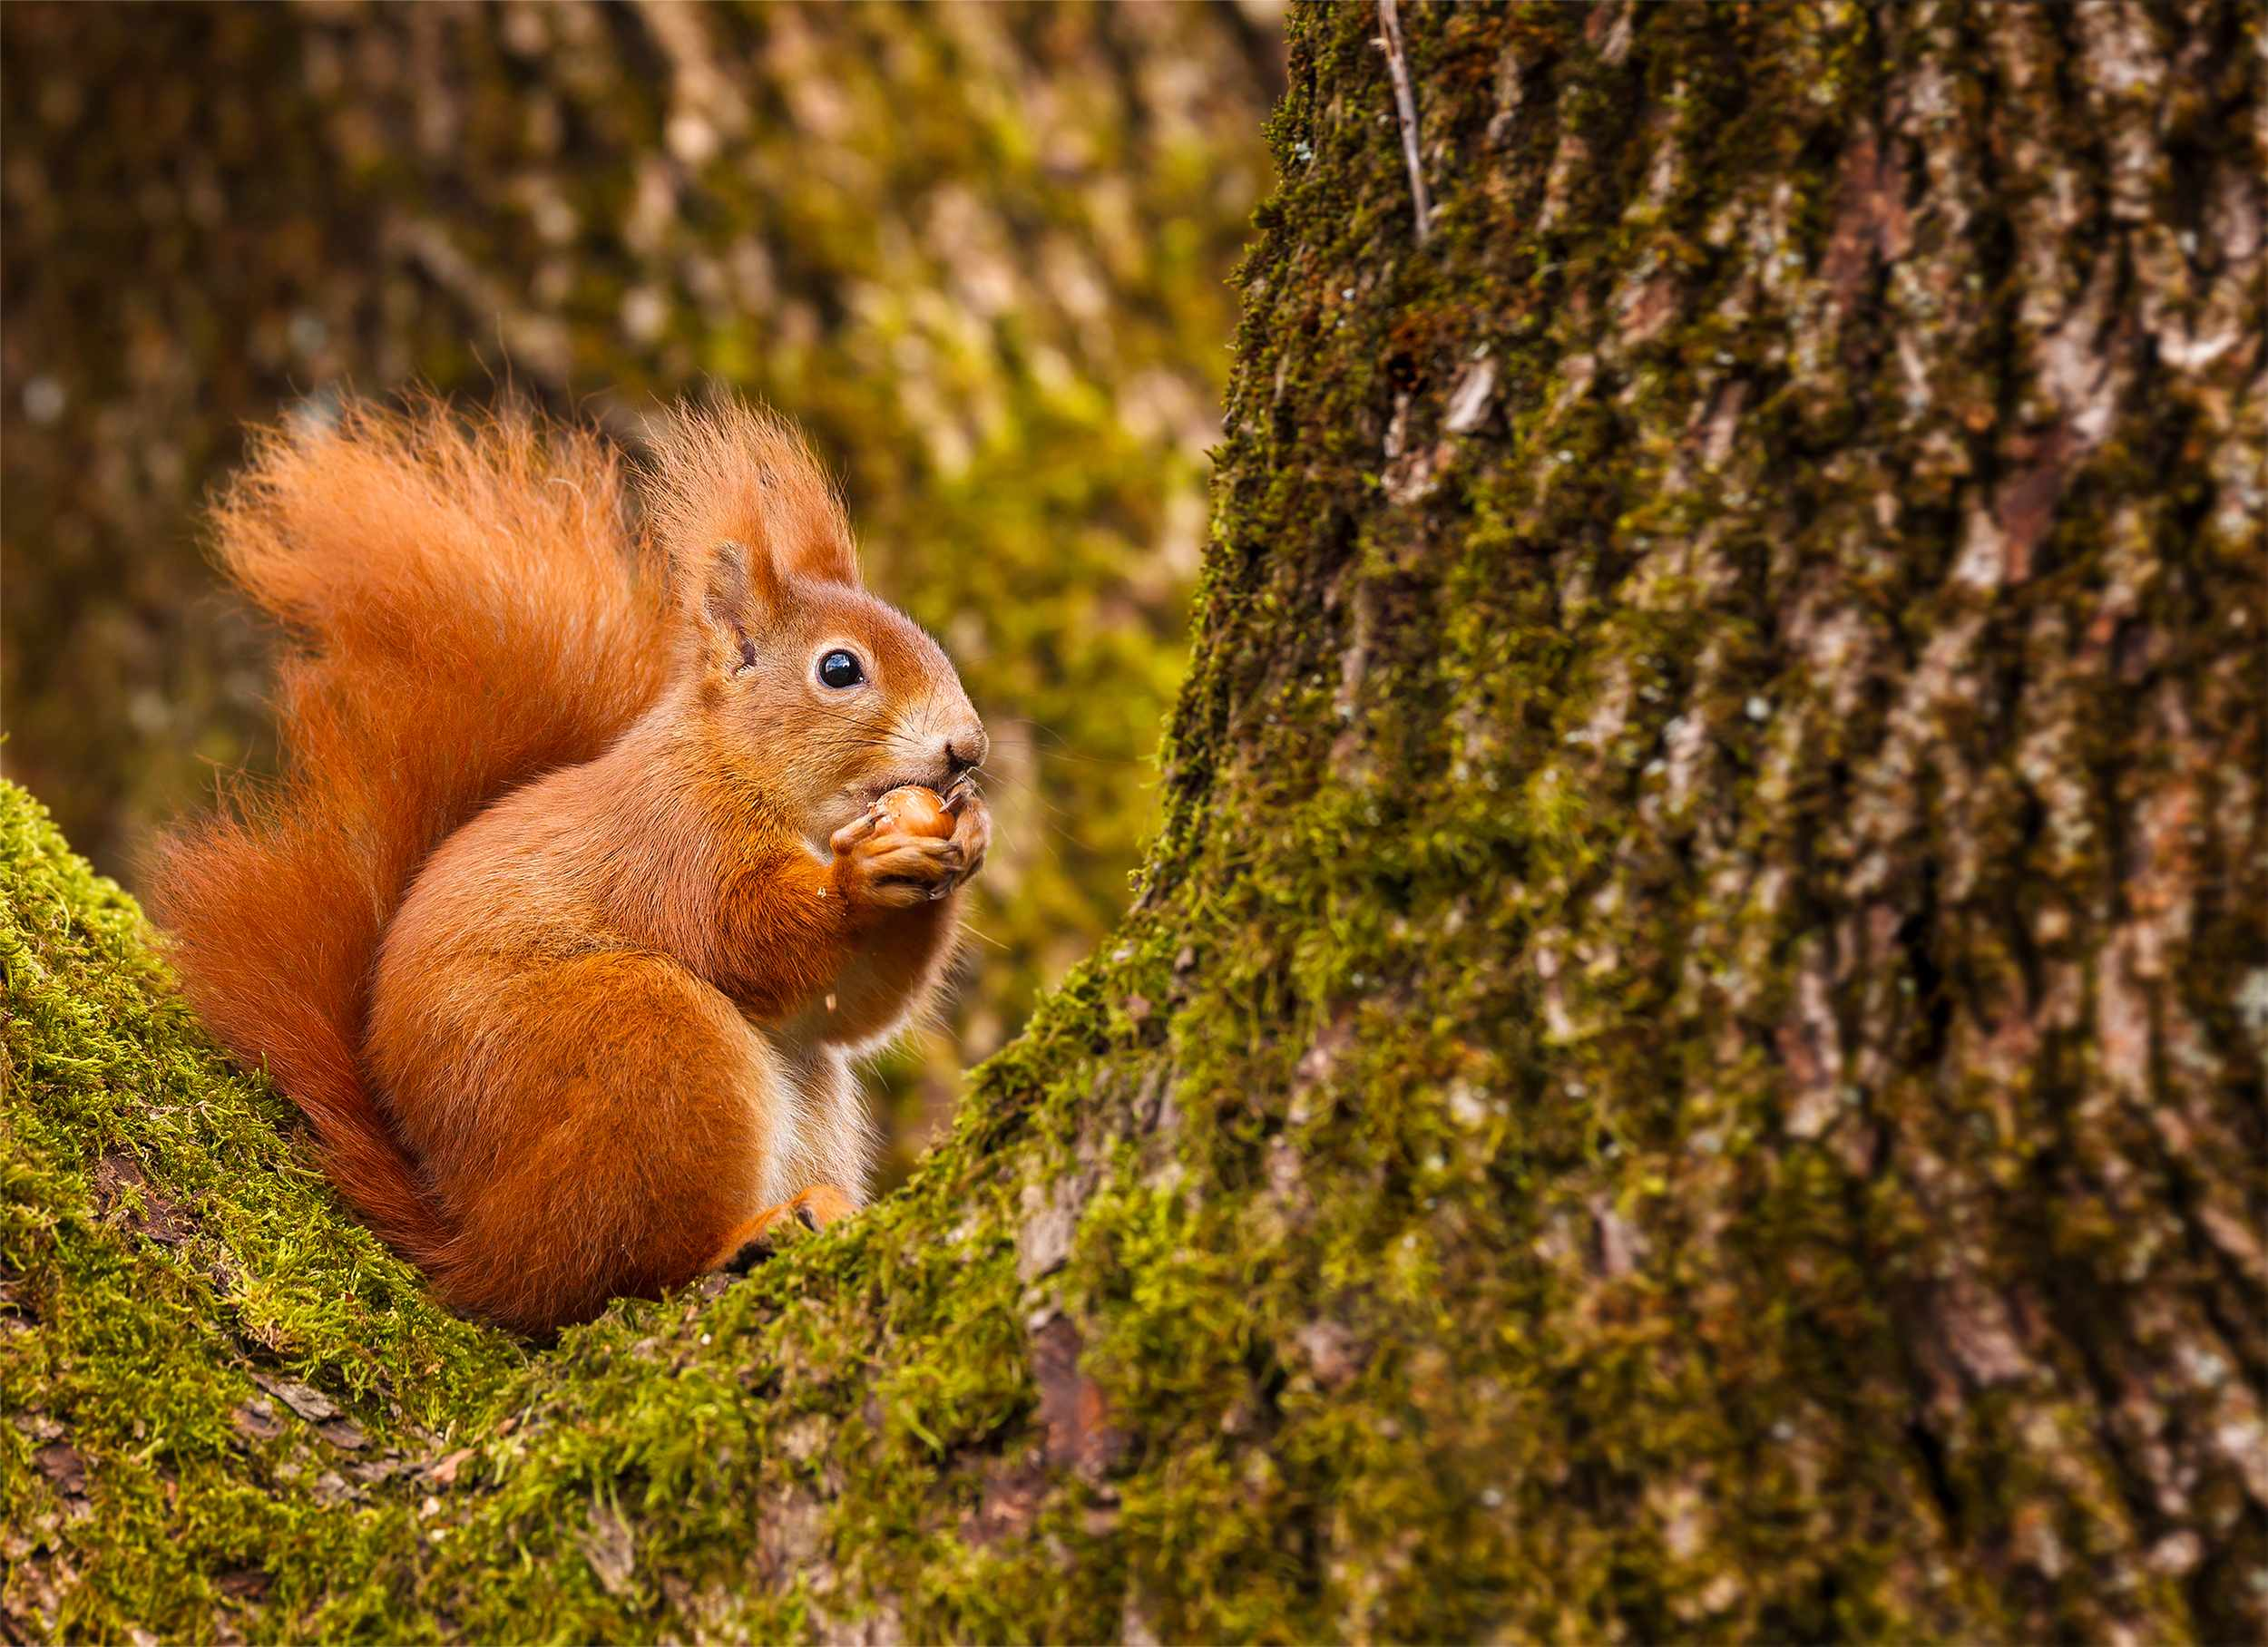 Red squirrel with nuts. © Neil Burton/Getty